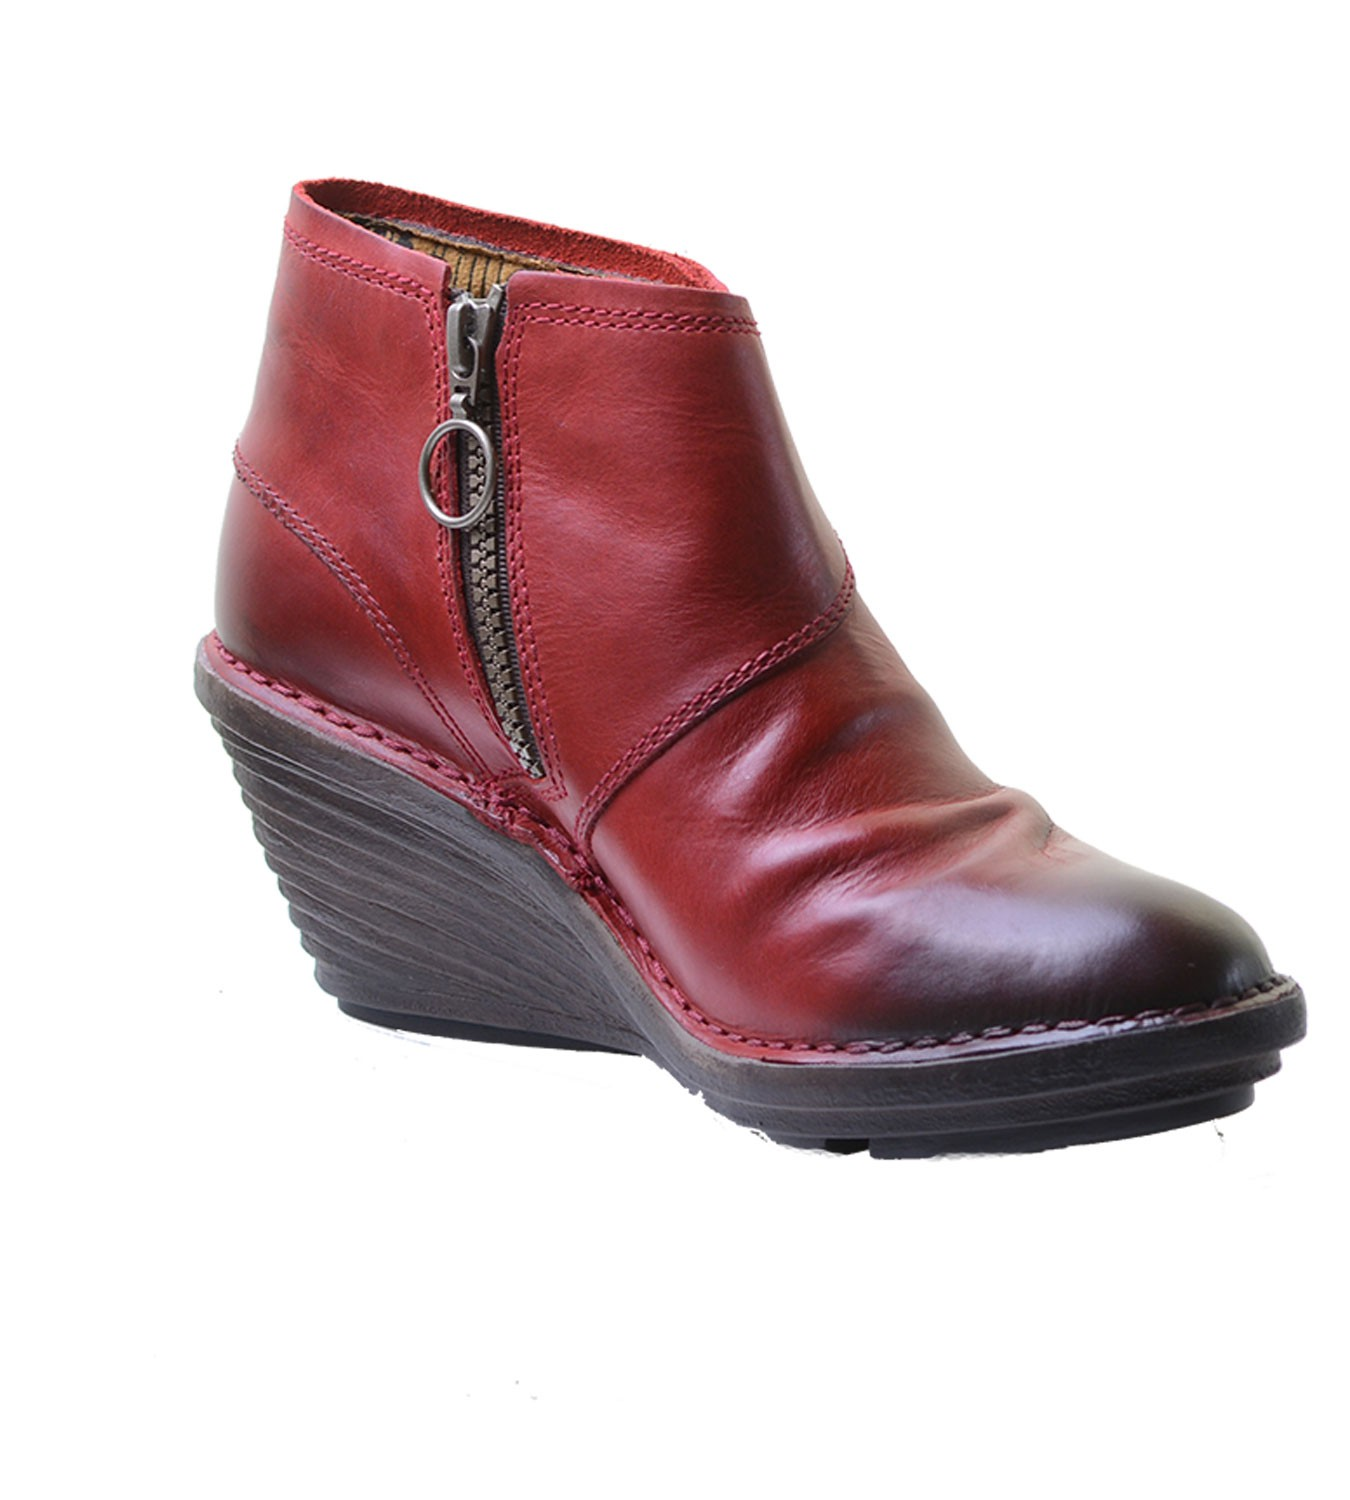 Fly London Womens Shoes Uk